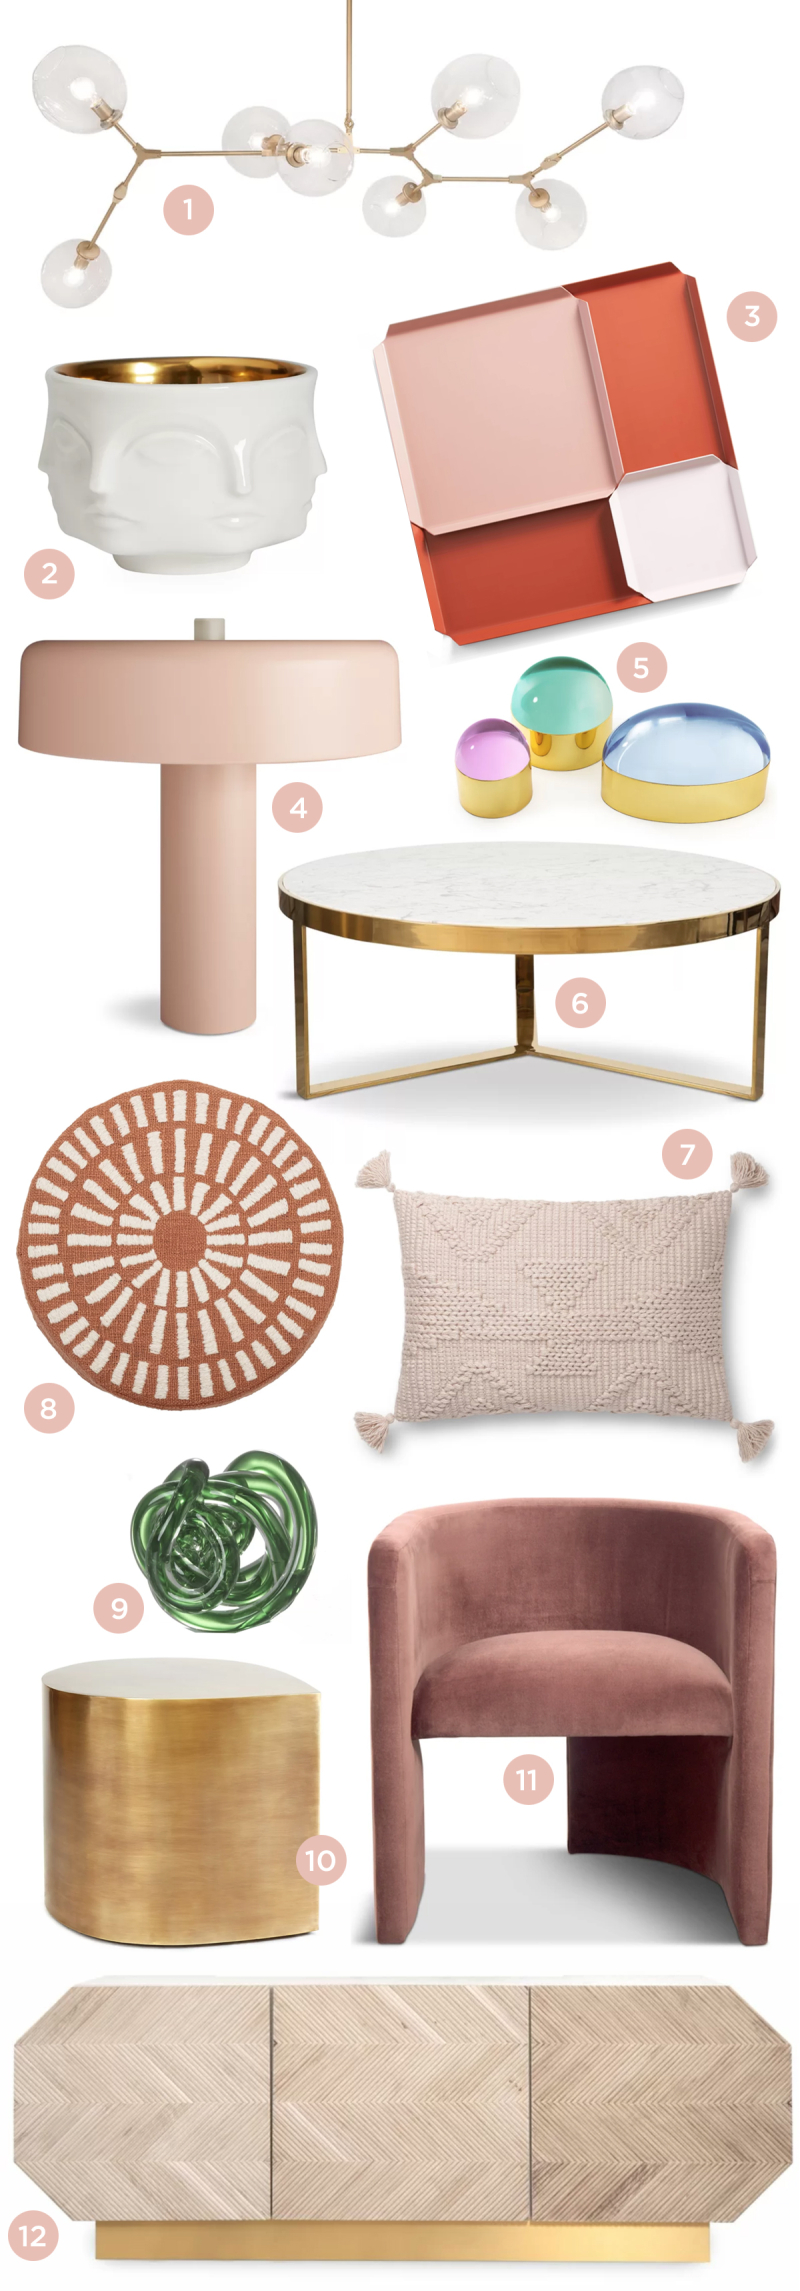 Wayfair Home Decor Favorites